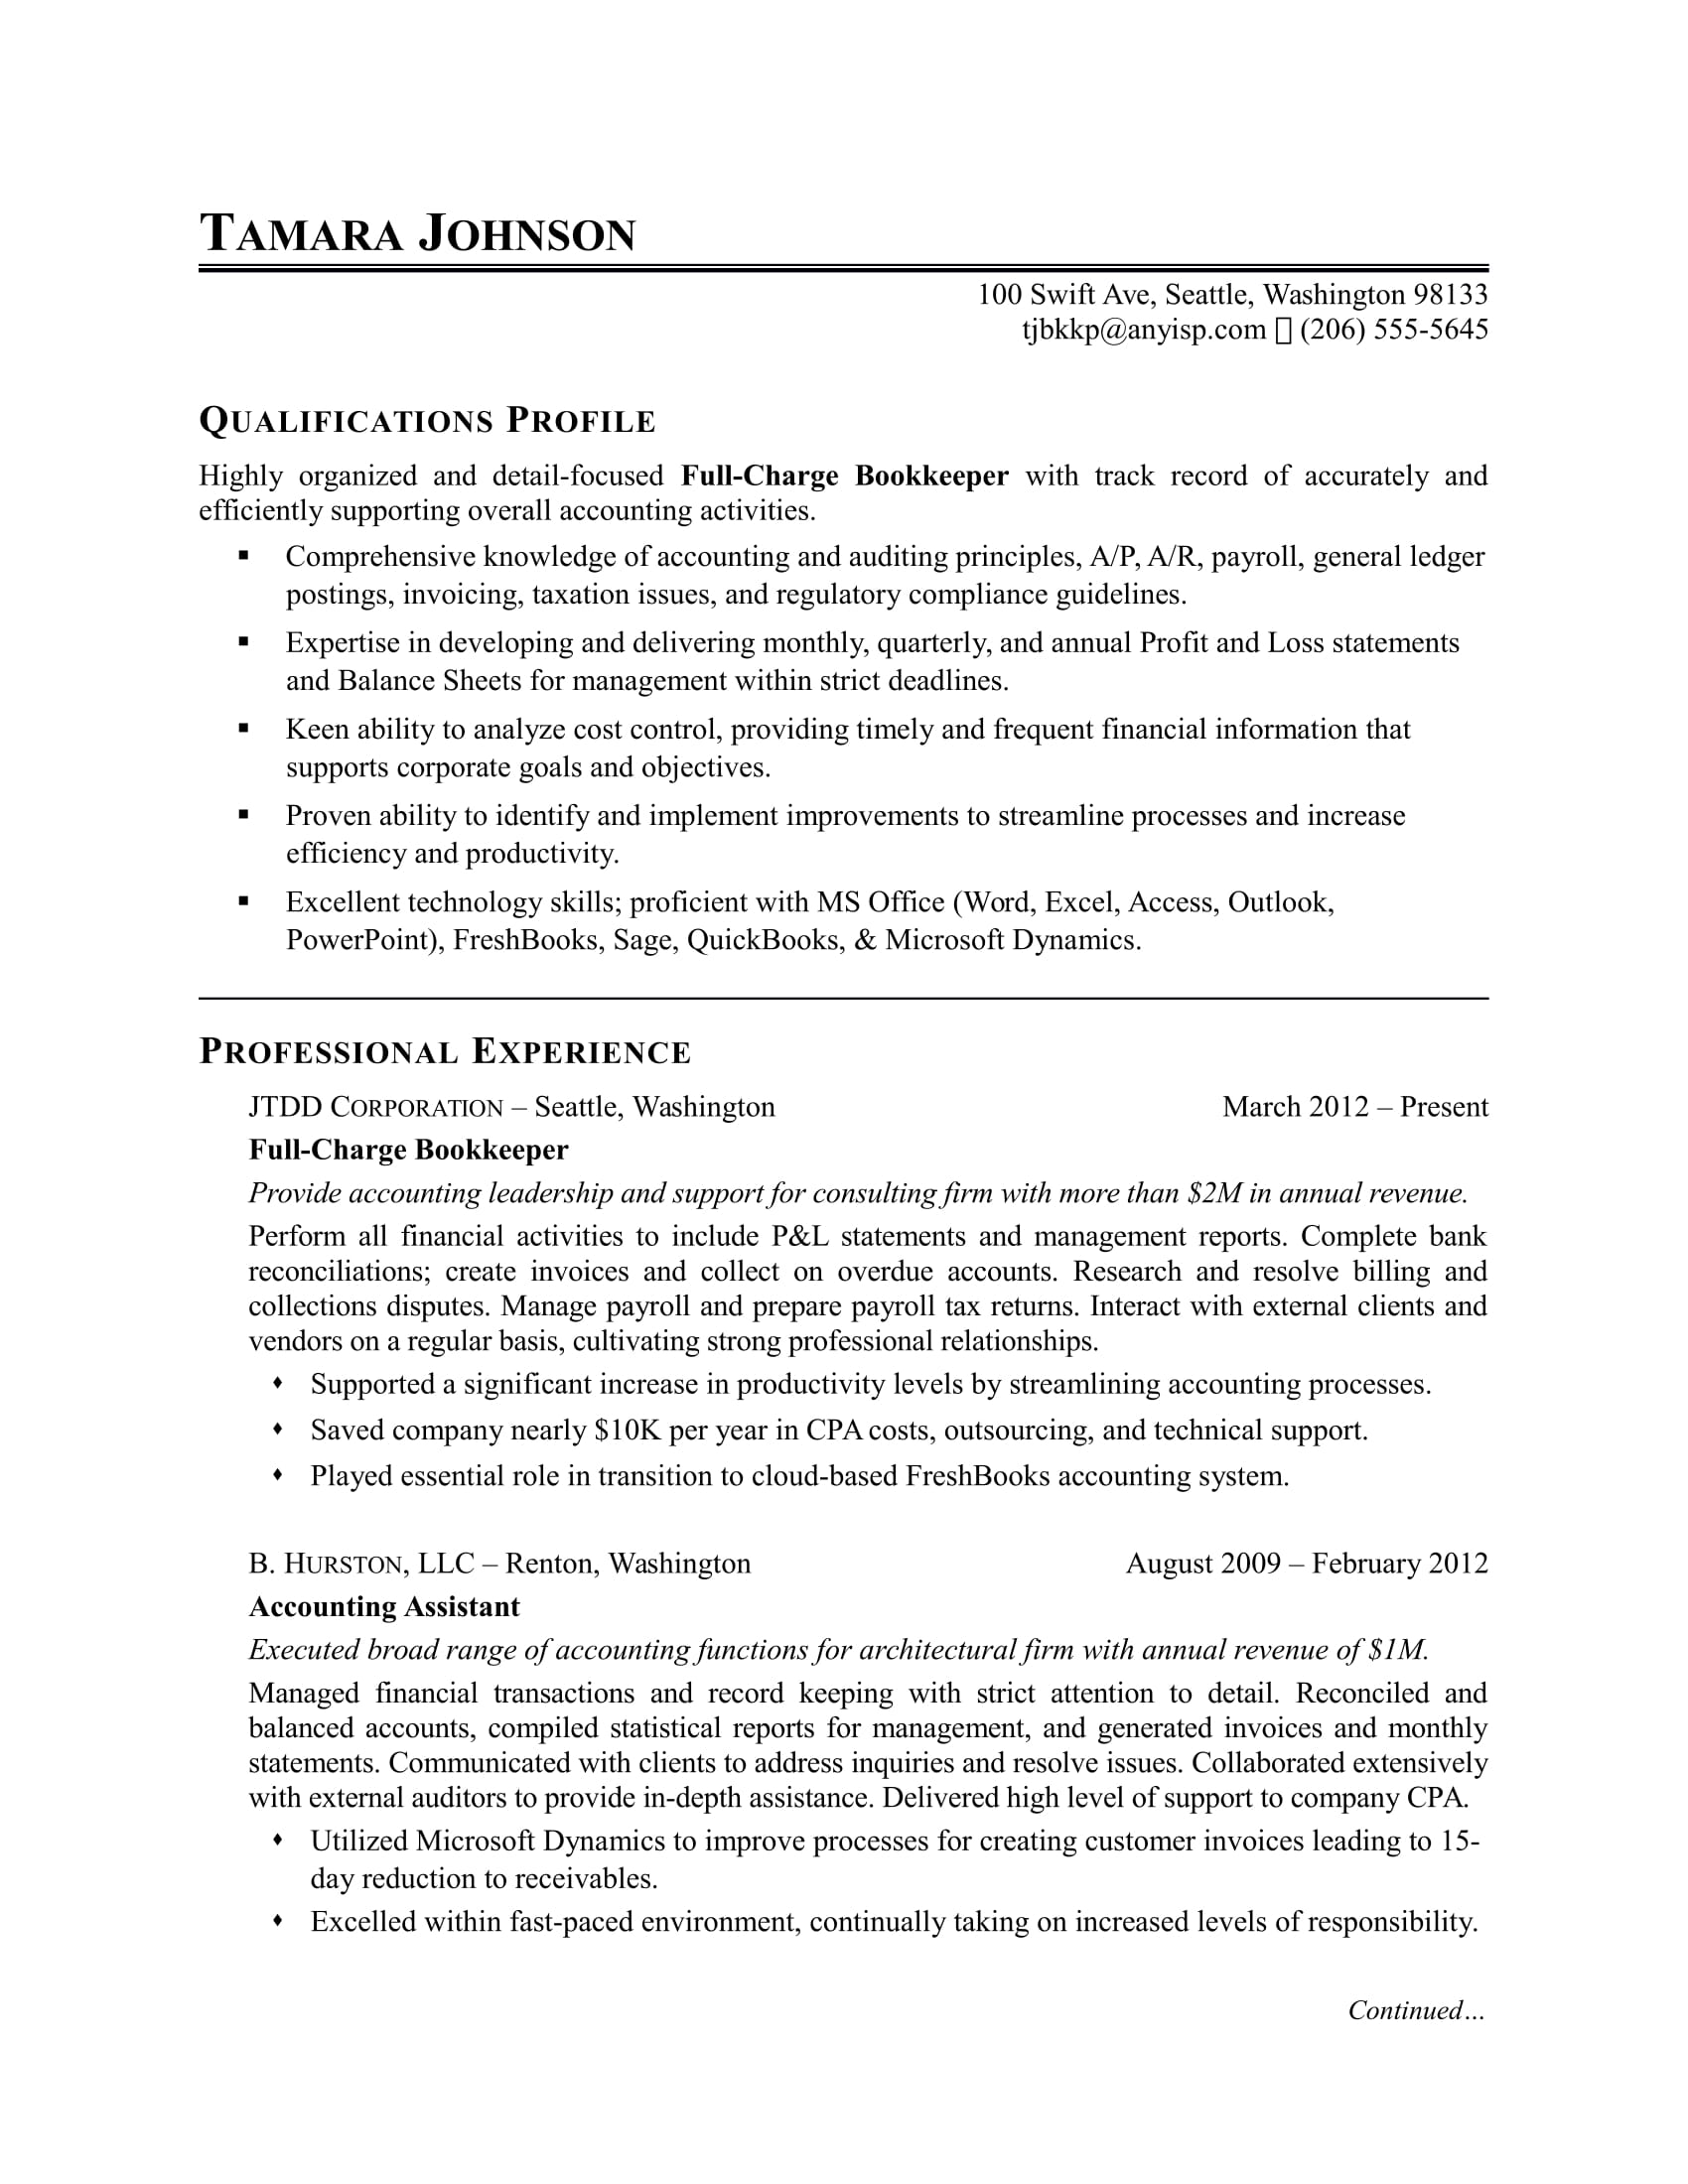 Bookkeeper Job Description For Resume - Professional User Manual ...